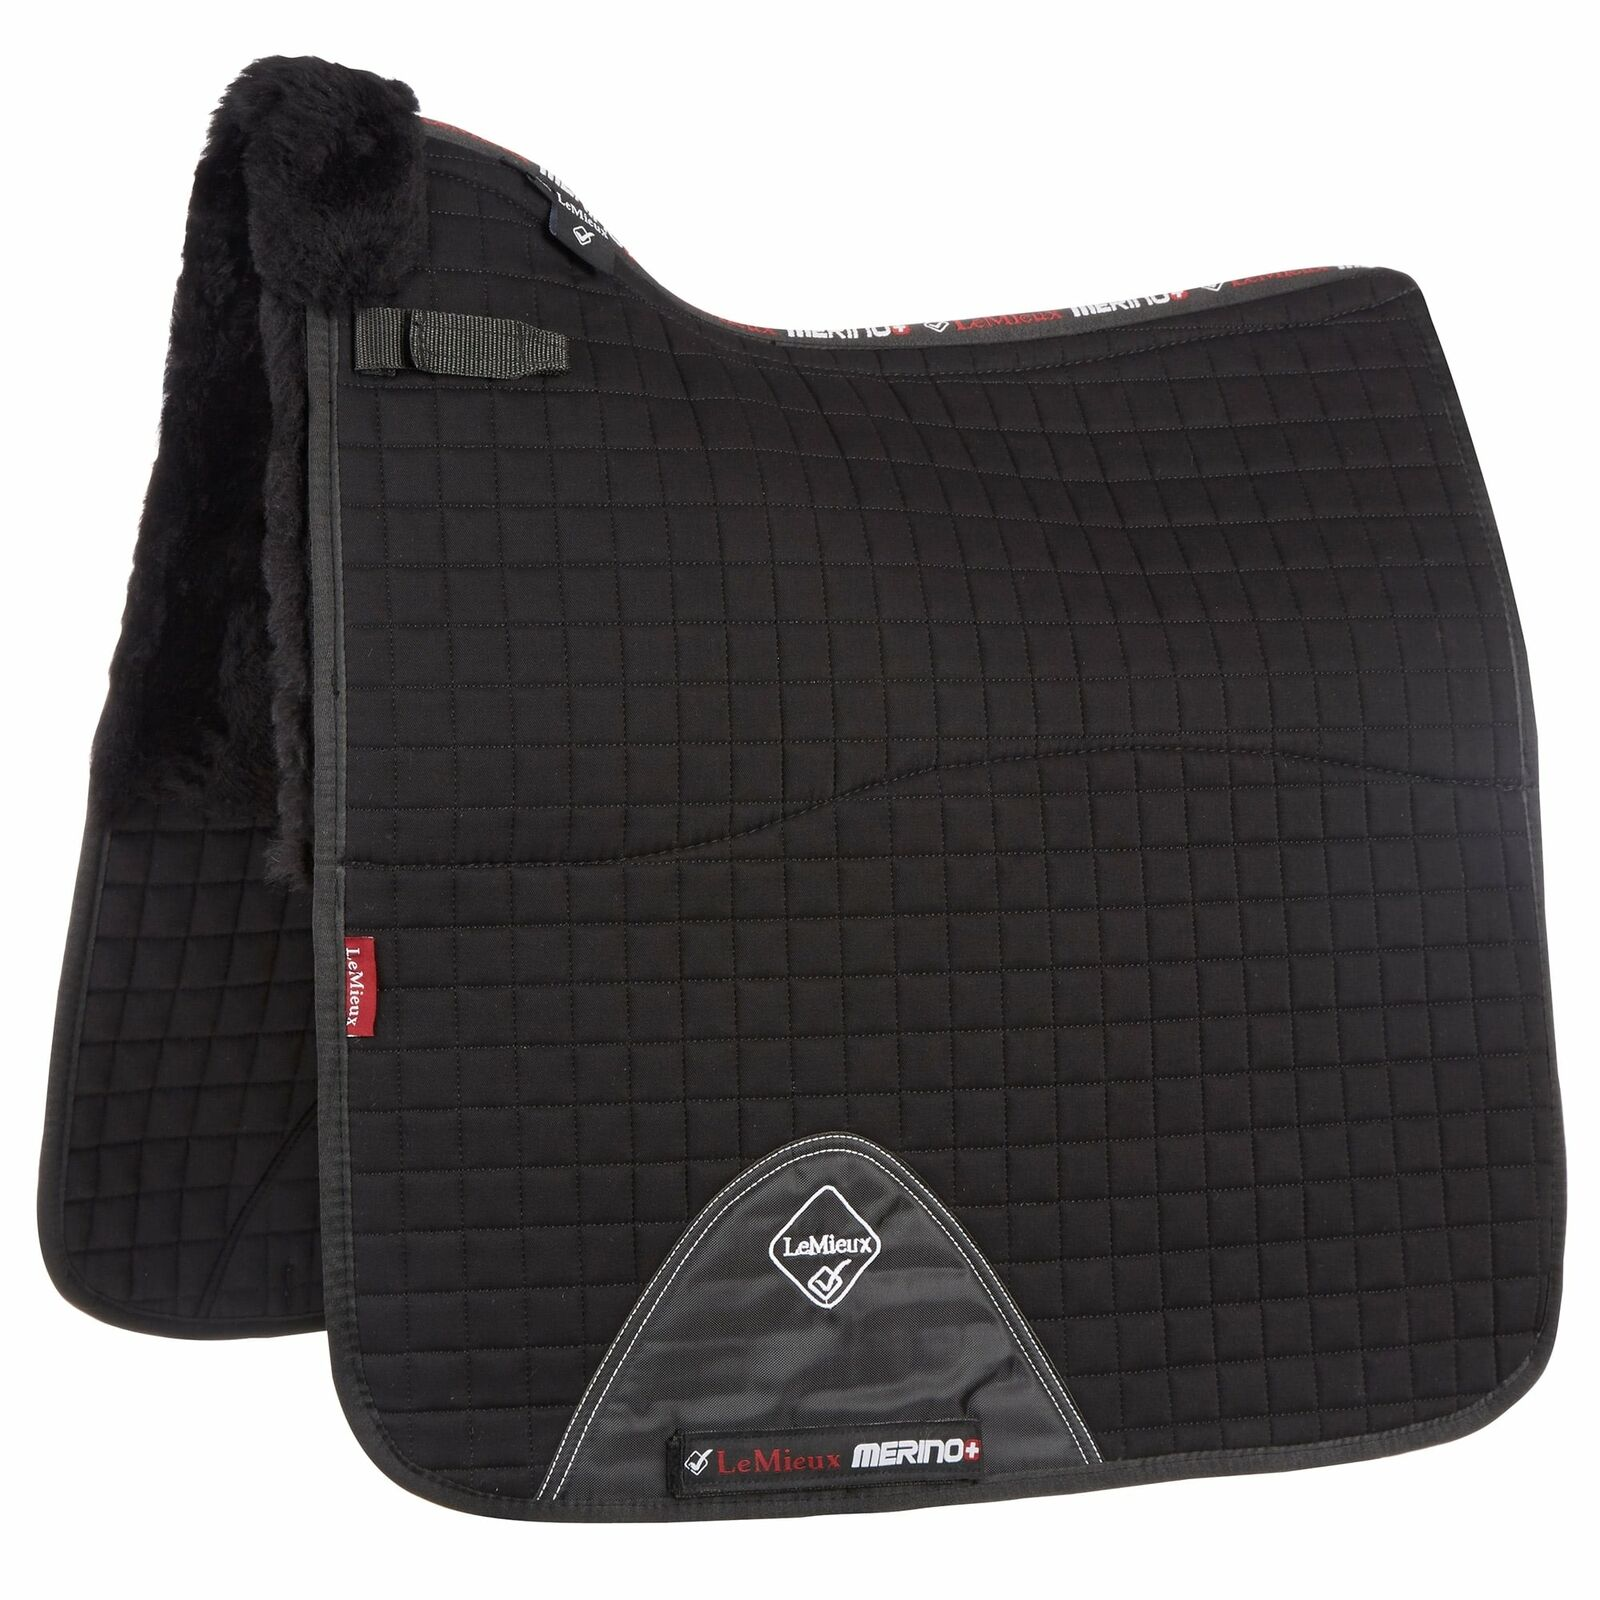 LeMieux Pro Lambswool Half Lined Dressage Square - Horse saddlepad